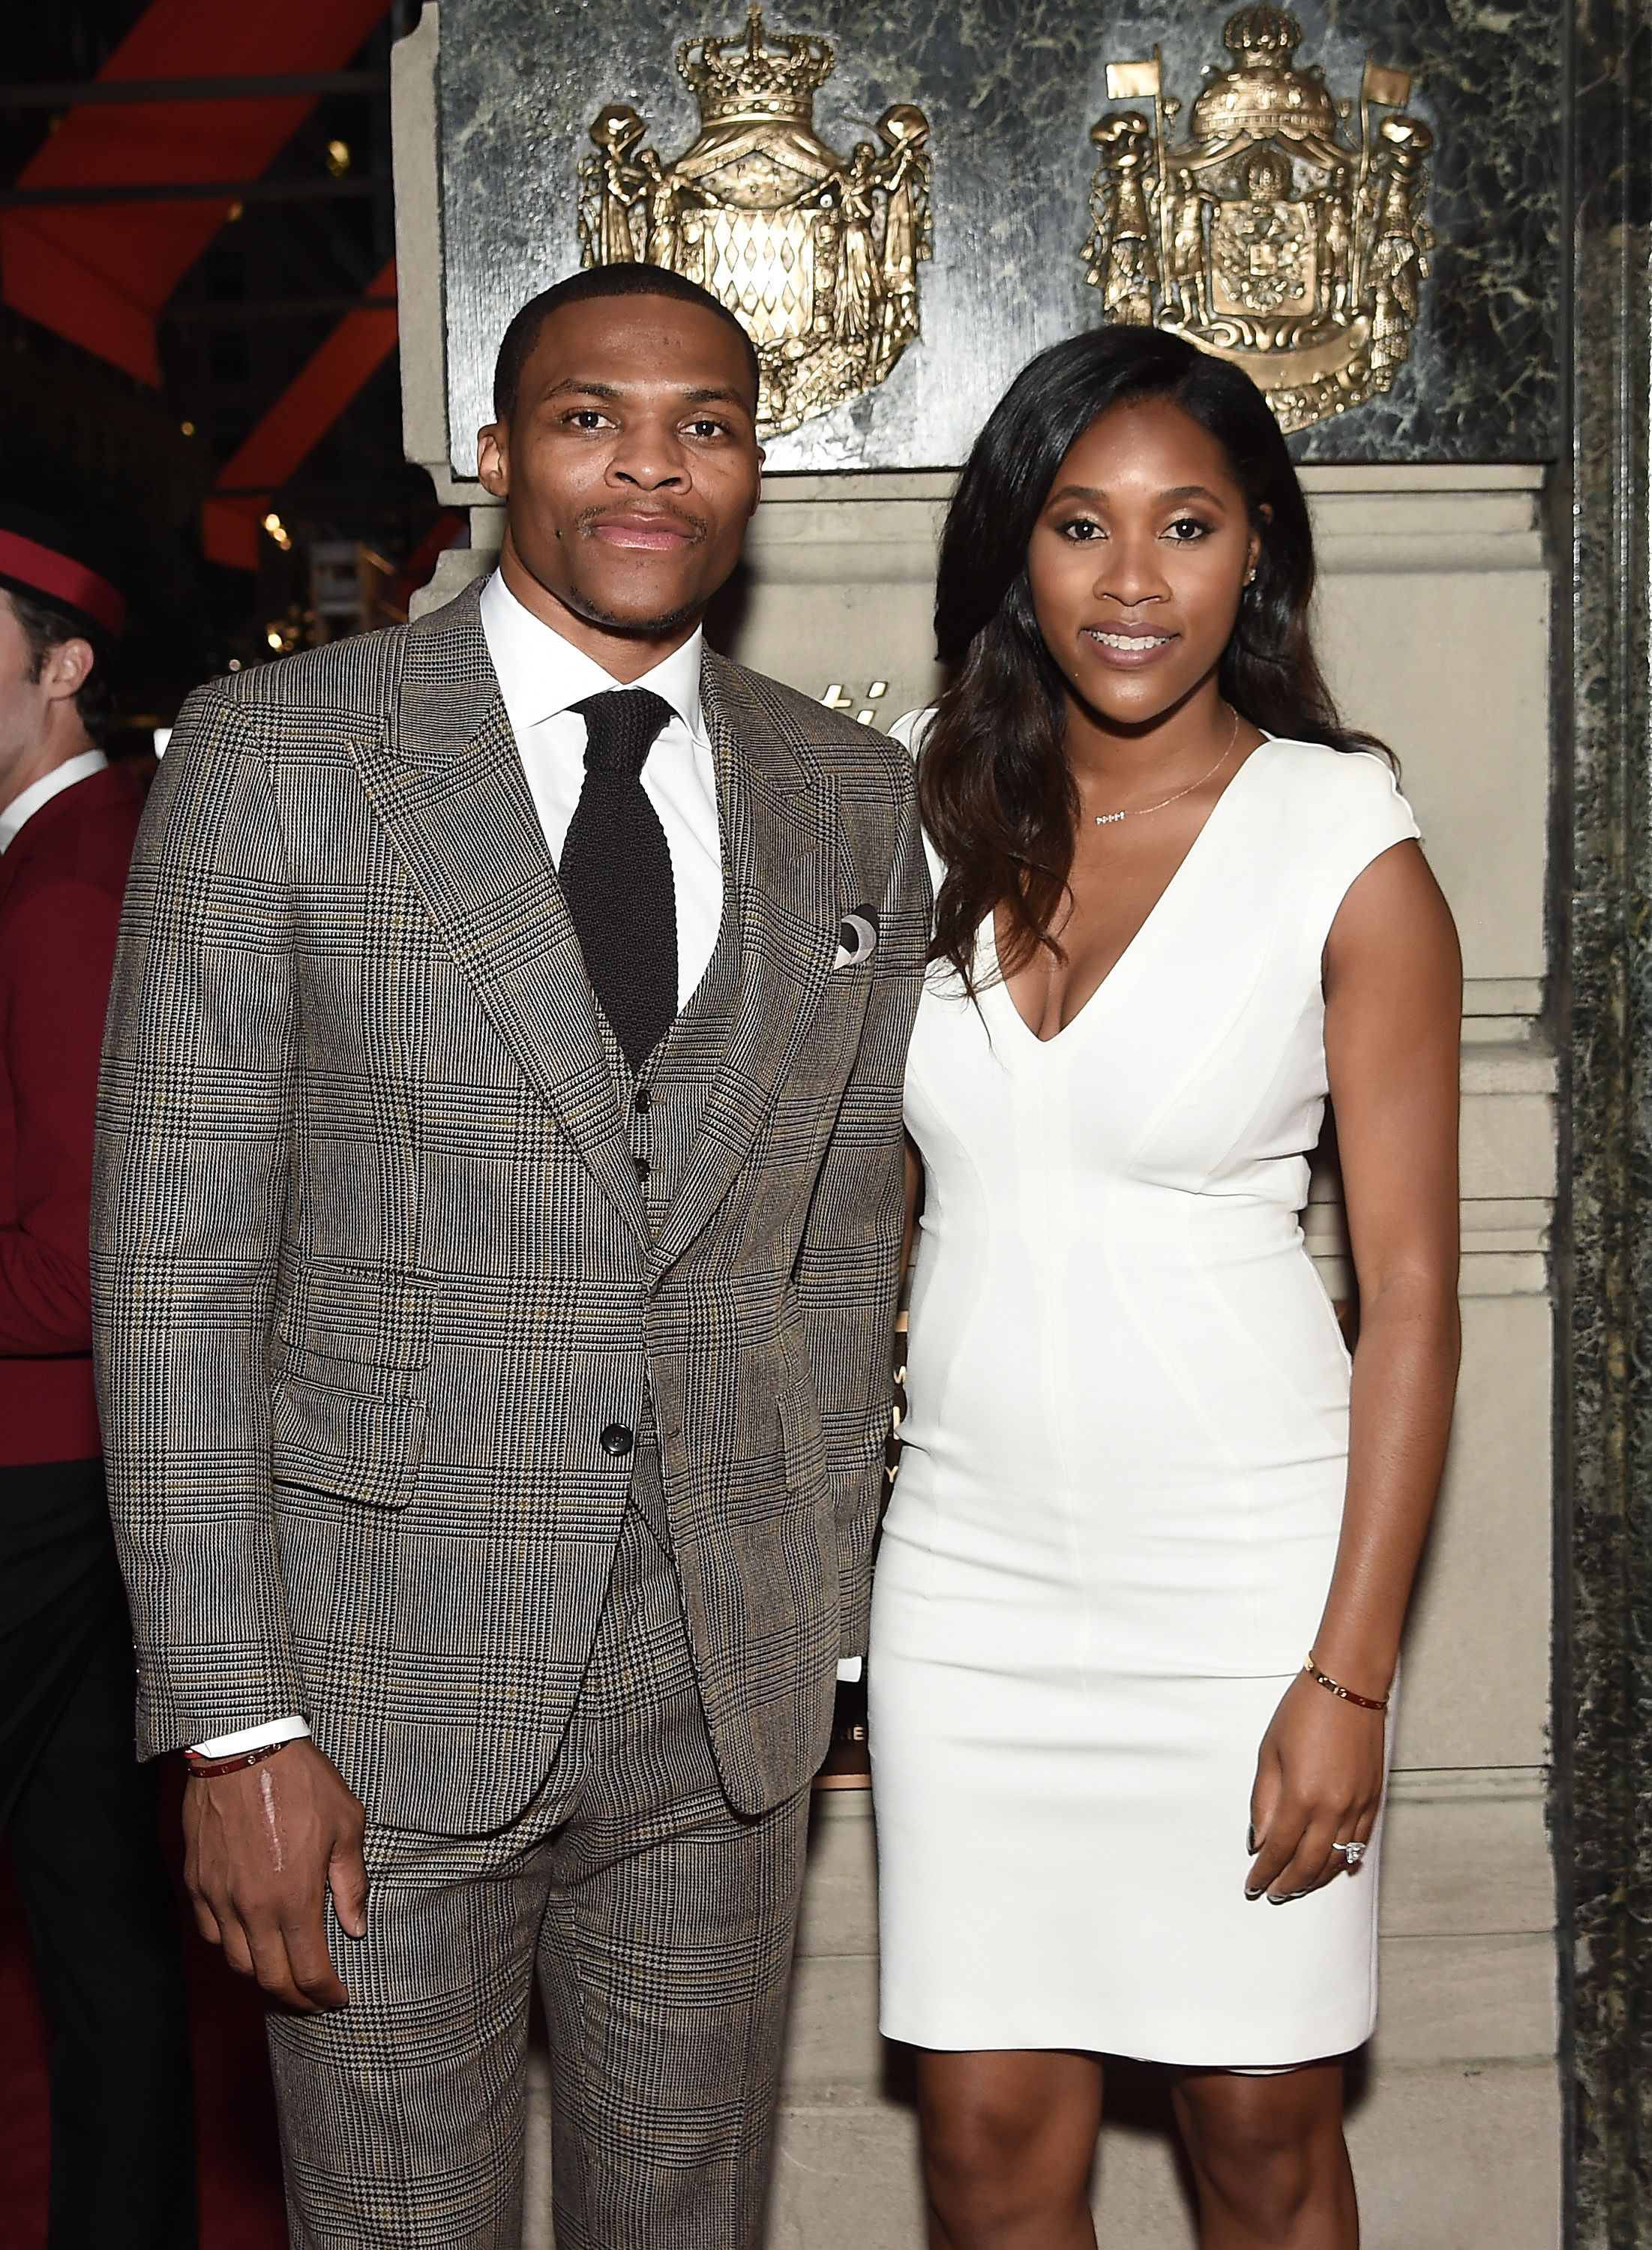 Russell Westbrook and wife Nina Westbrook attend The Cartier Fifth Avenue Grand Reopening Event at the Cartier Mansion on September 7, 2016 in New York City.   Source: Getty Images